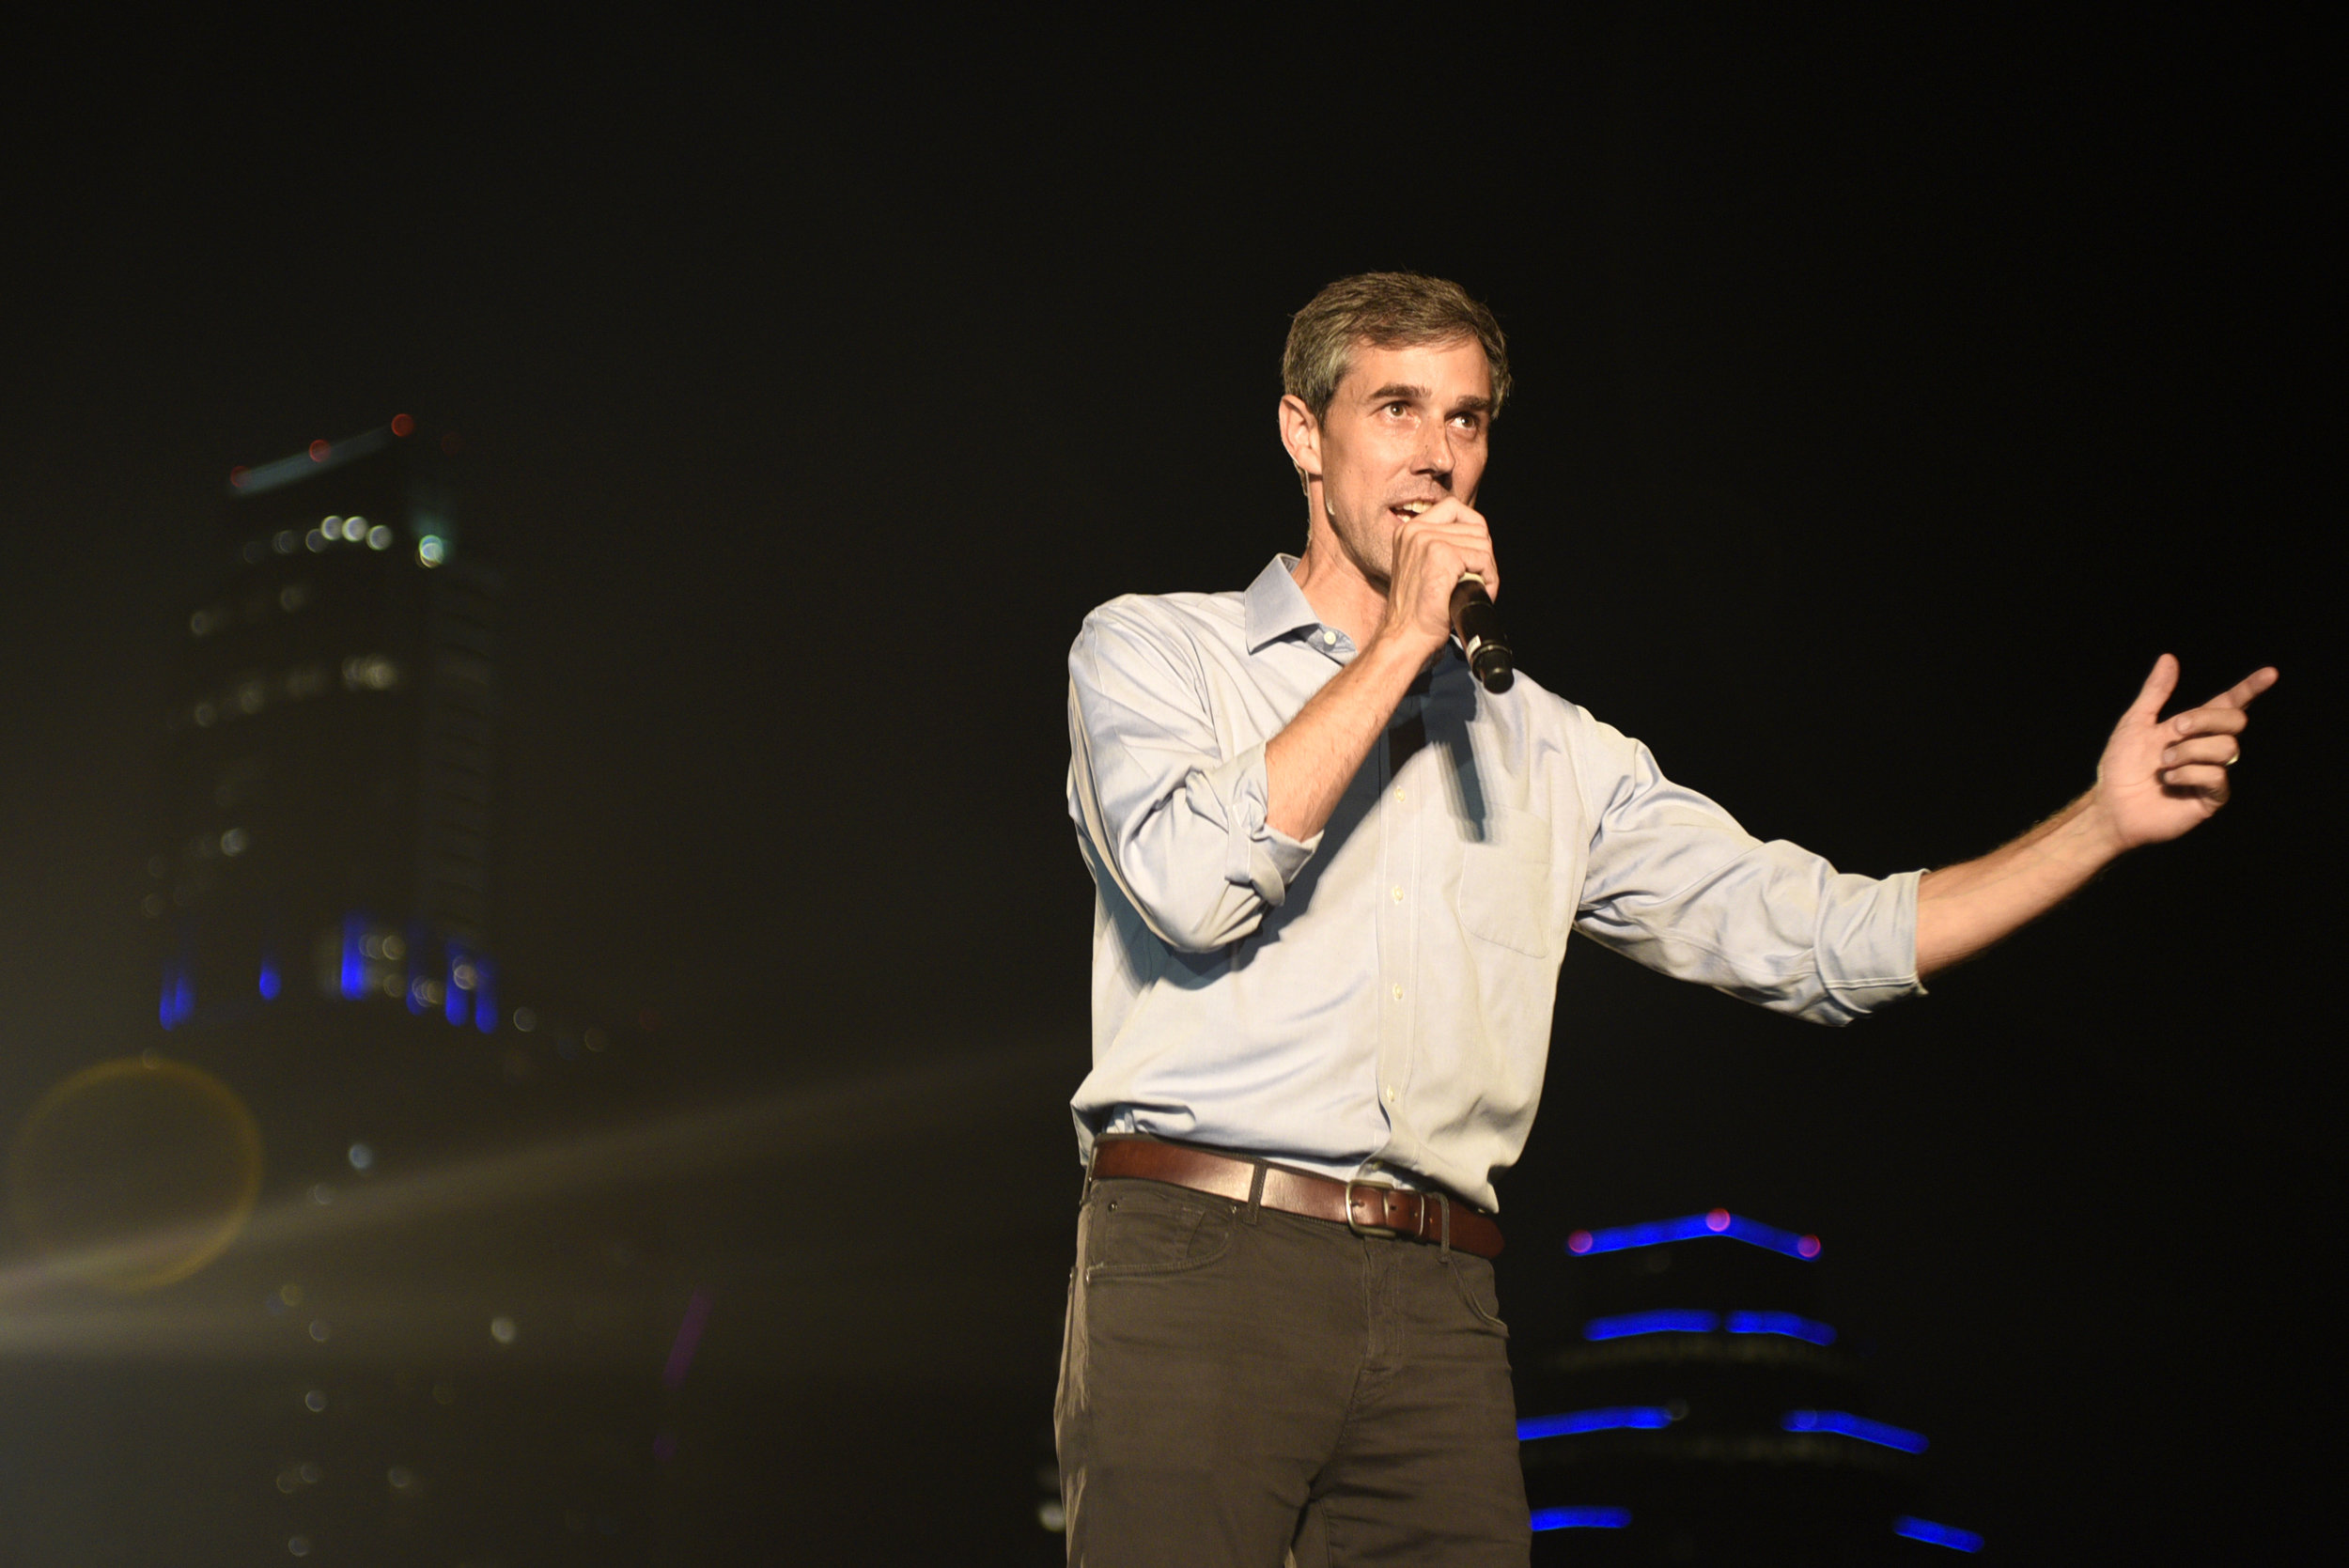 Beto urges attendees to register to vote before the Texas deadline, October 9.